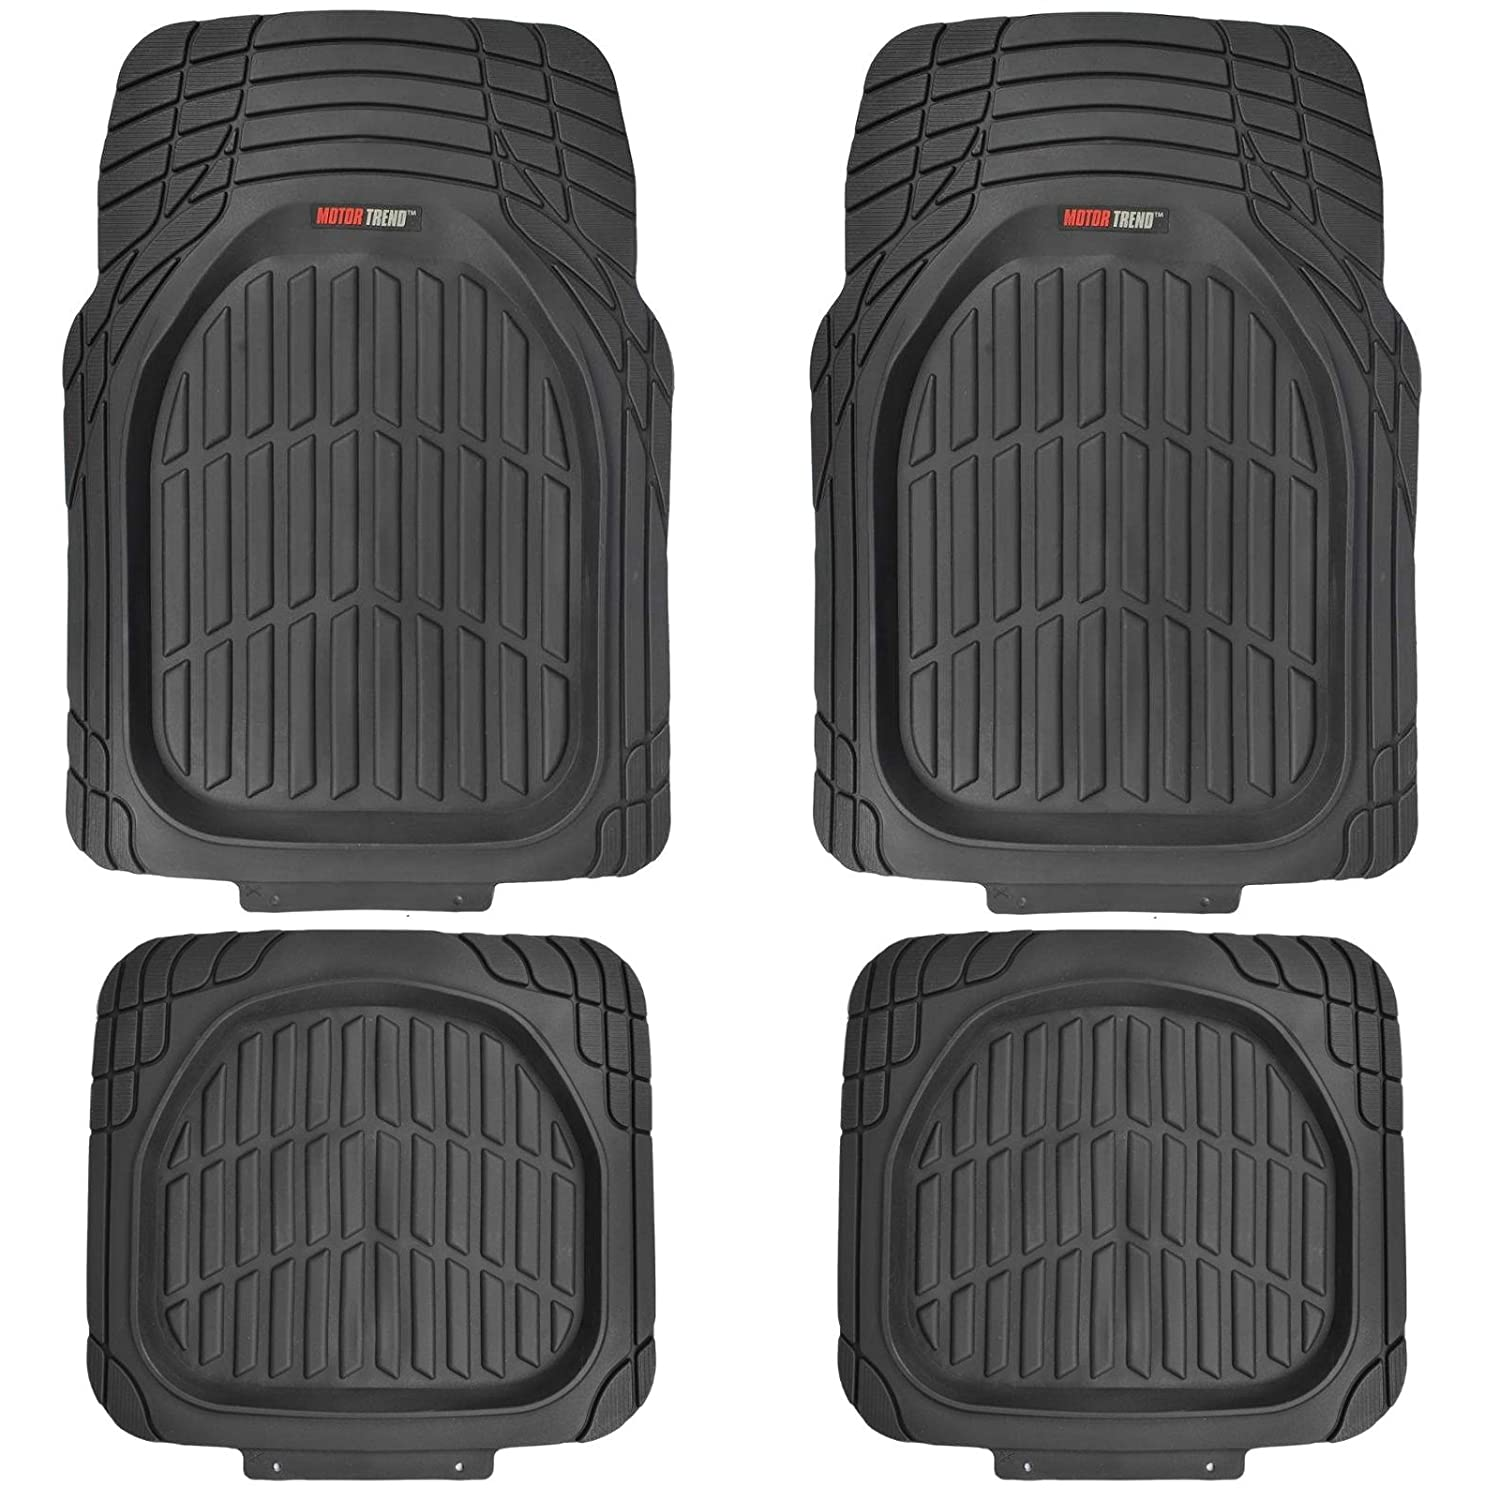 Weathertech mats walmart - Motortrend Flextough Tortoise Heavy Duty Rubber Floor Mats For All Weather Protection Deep Dish